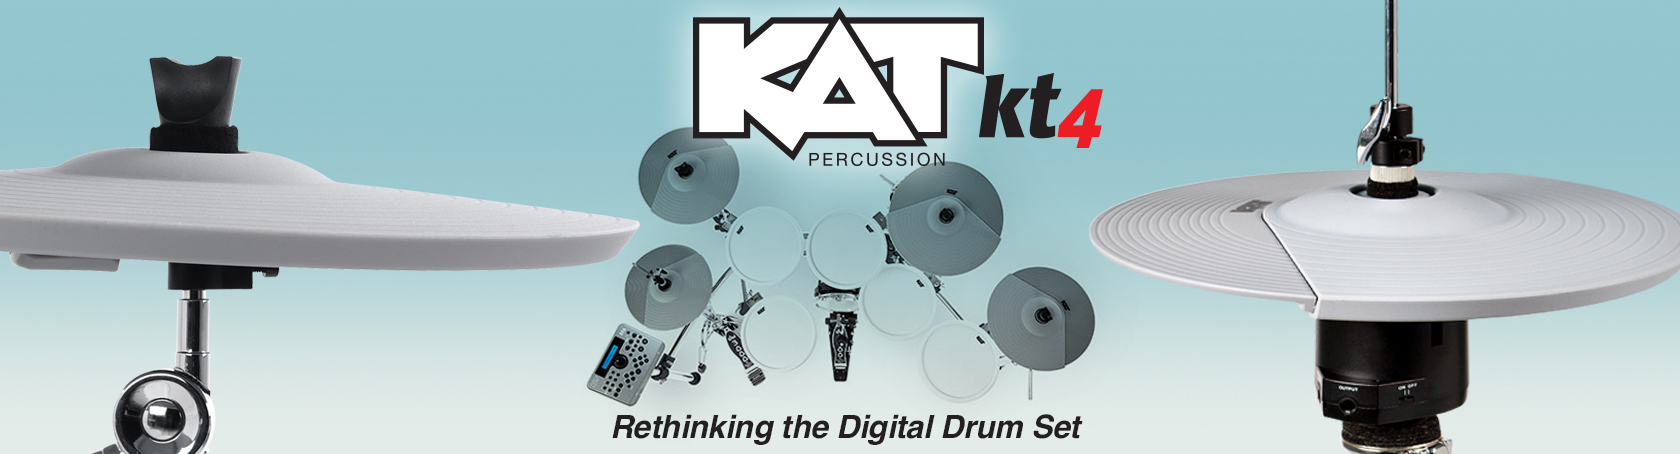 KAT KT-4 - Rethinking the Digital Drumset